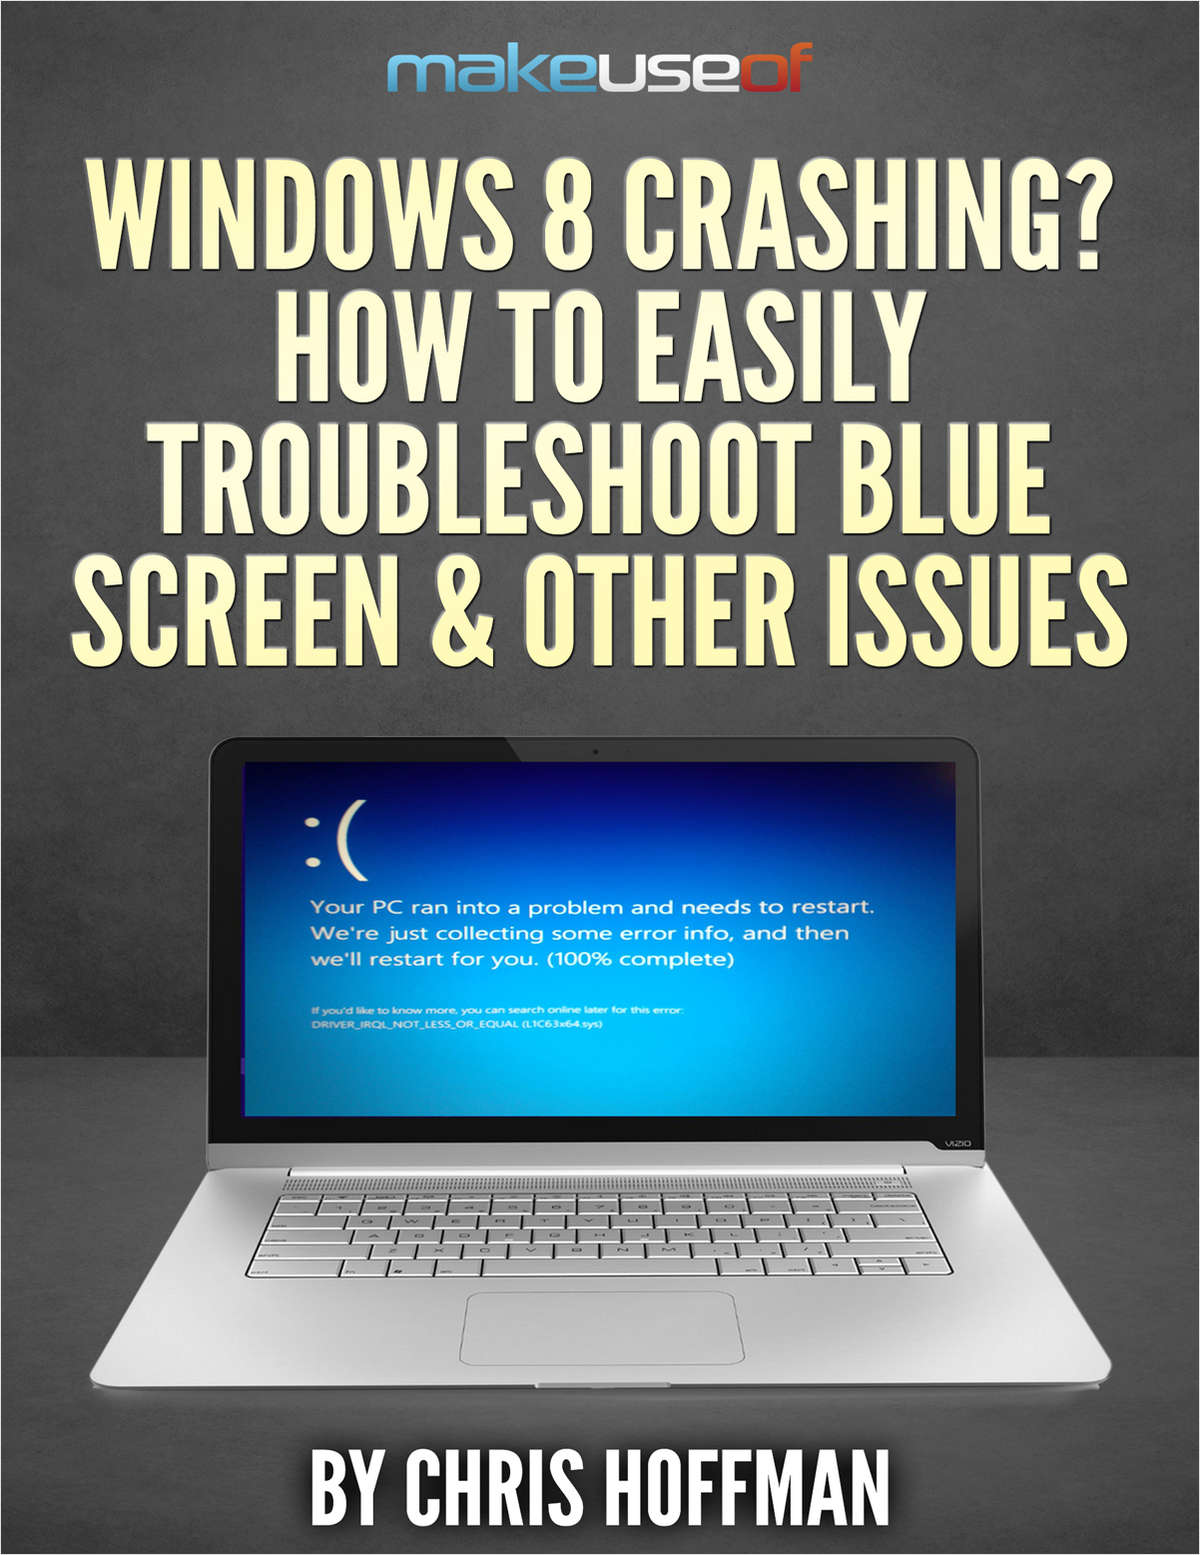 Windows 8 Crashing? How To Easily Troubleshoot Blue Screen & Other Issues